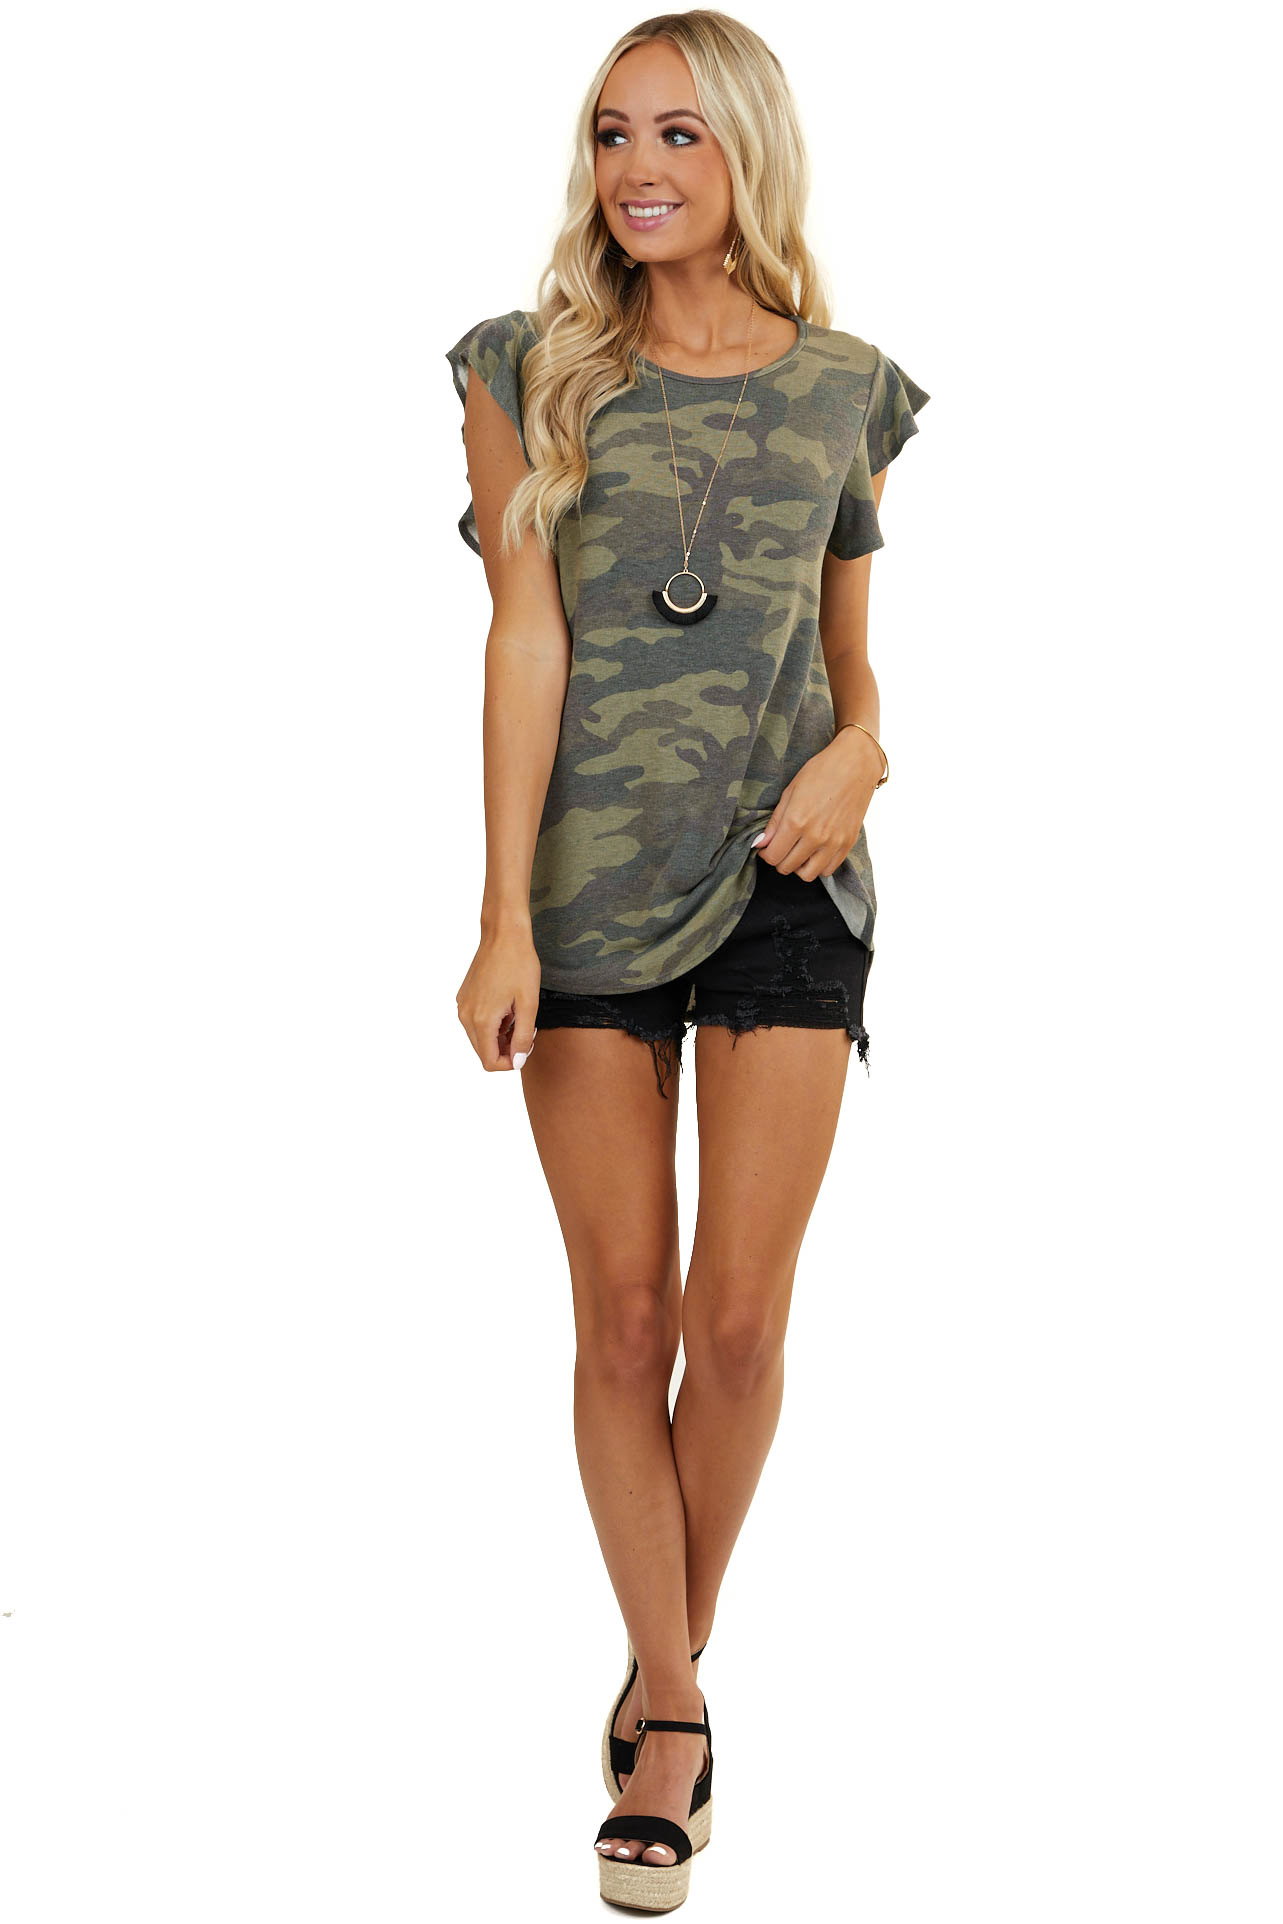 Olive Green Camo Print Knit Top with Short Ruffled Sleeves